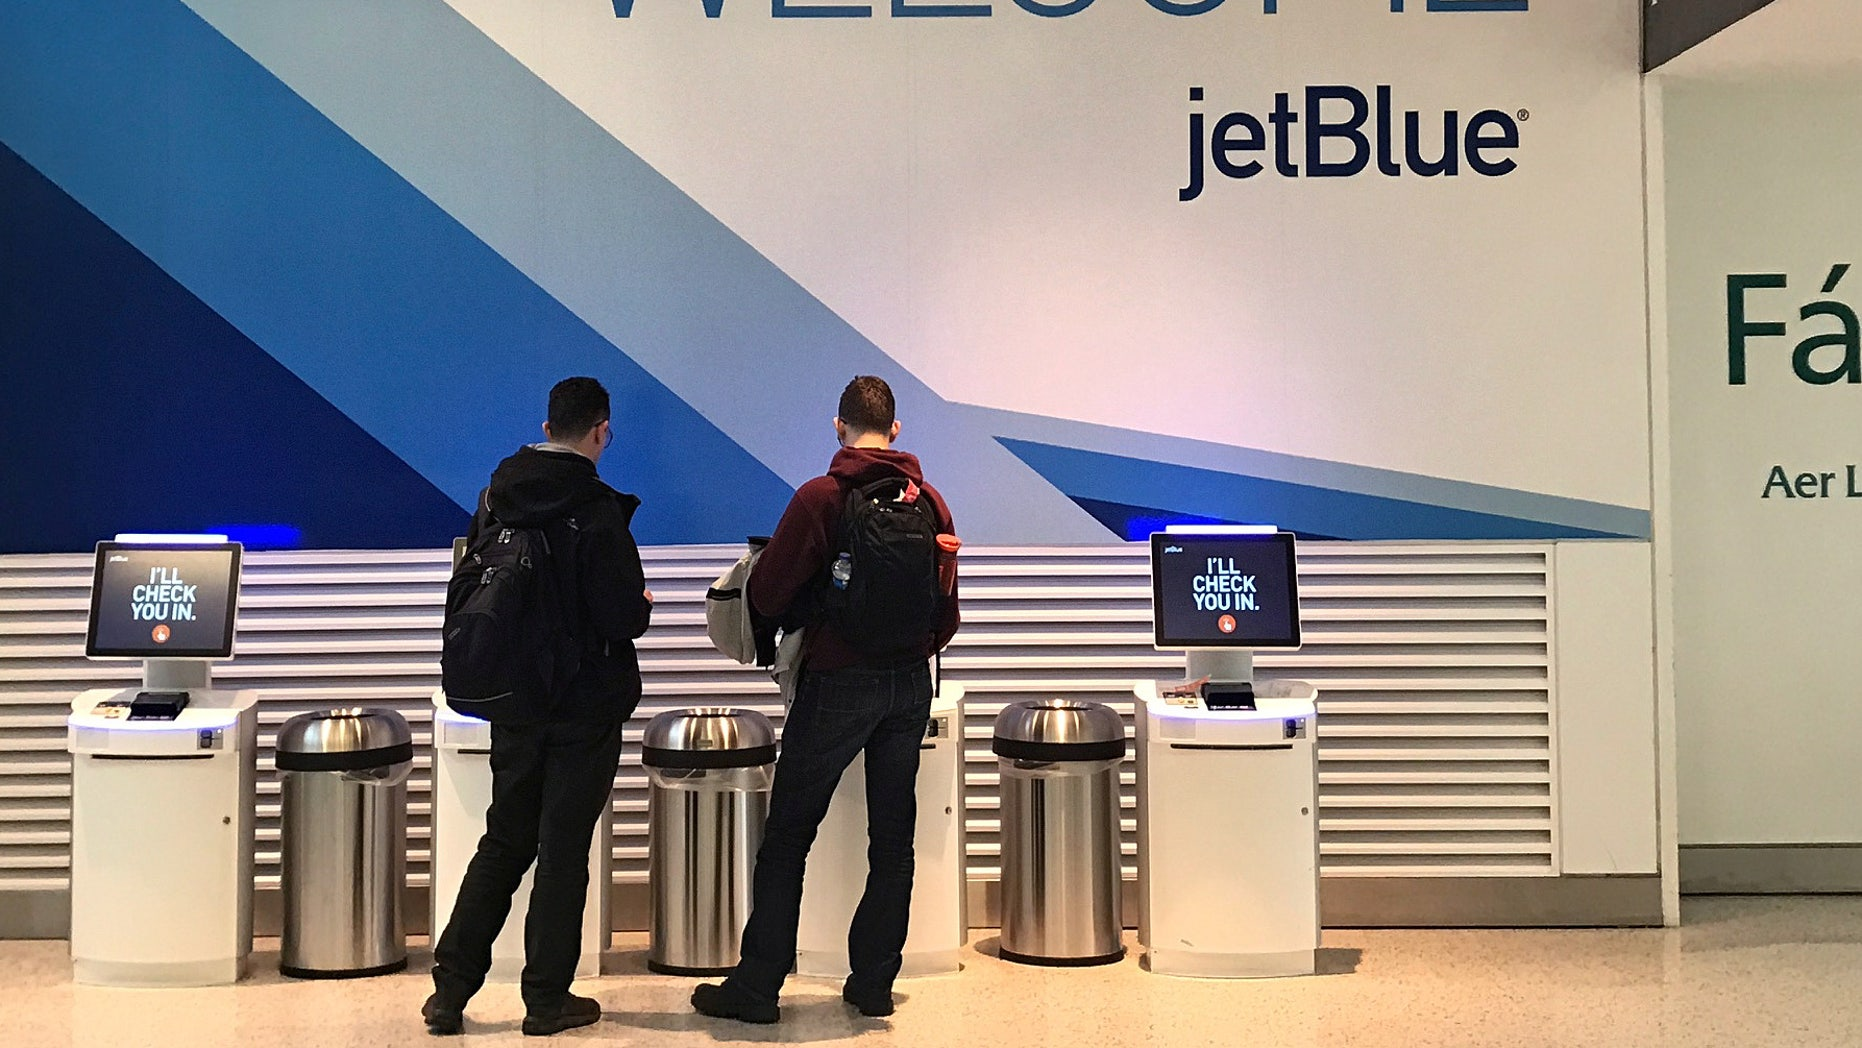 Travelers check-in at a JetBlue Airways kiosk at John F. Kennedy Airport in the Queens borough of New York, U.S., January 24, 2017.